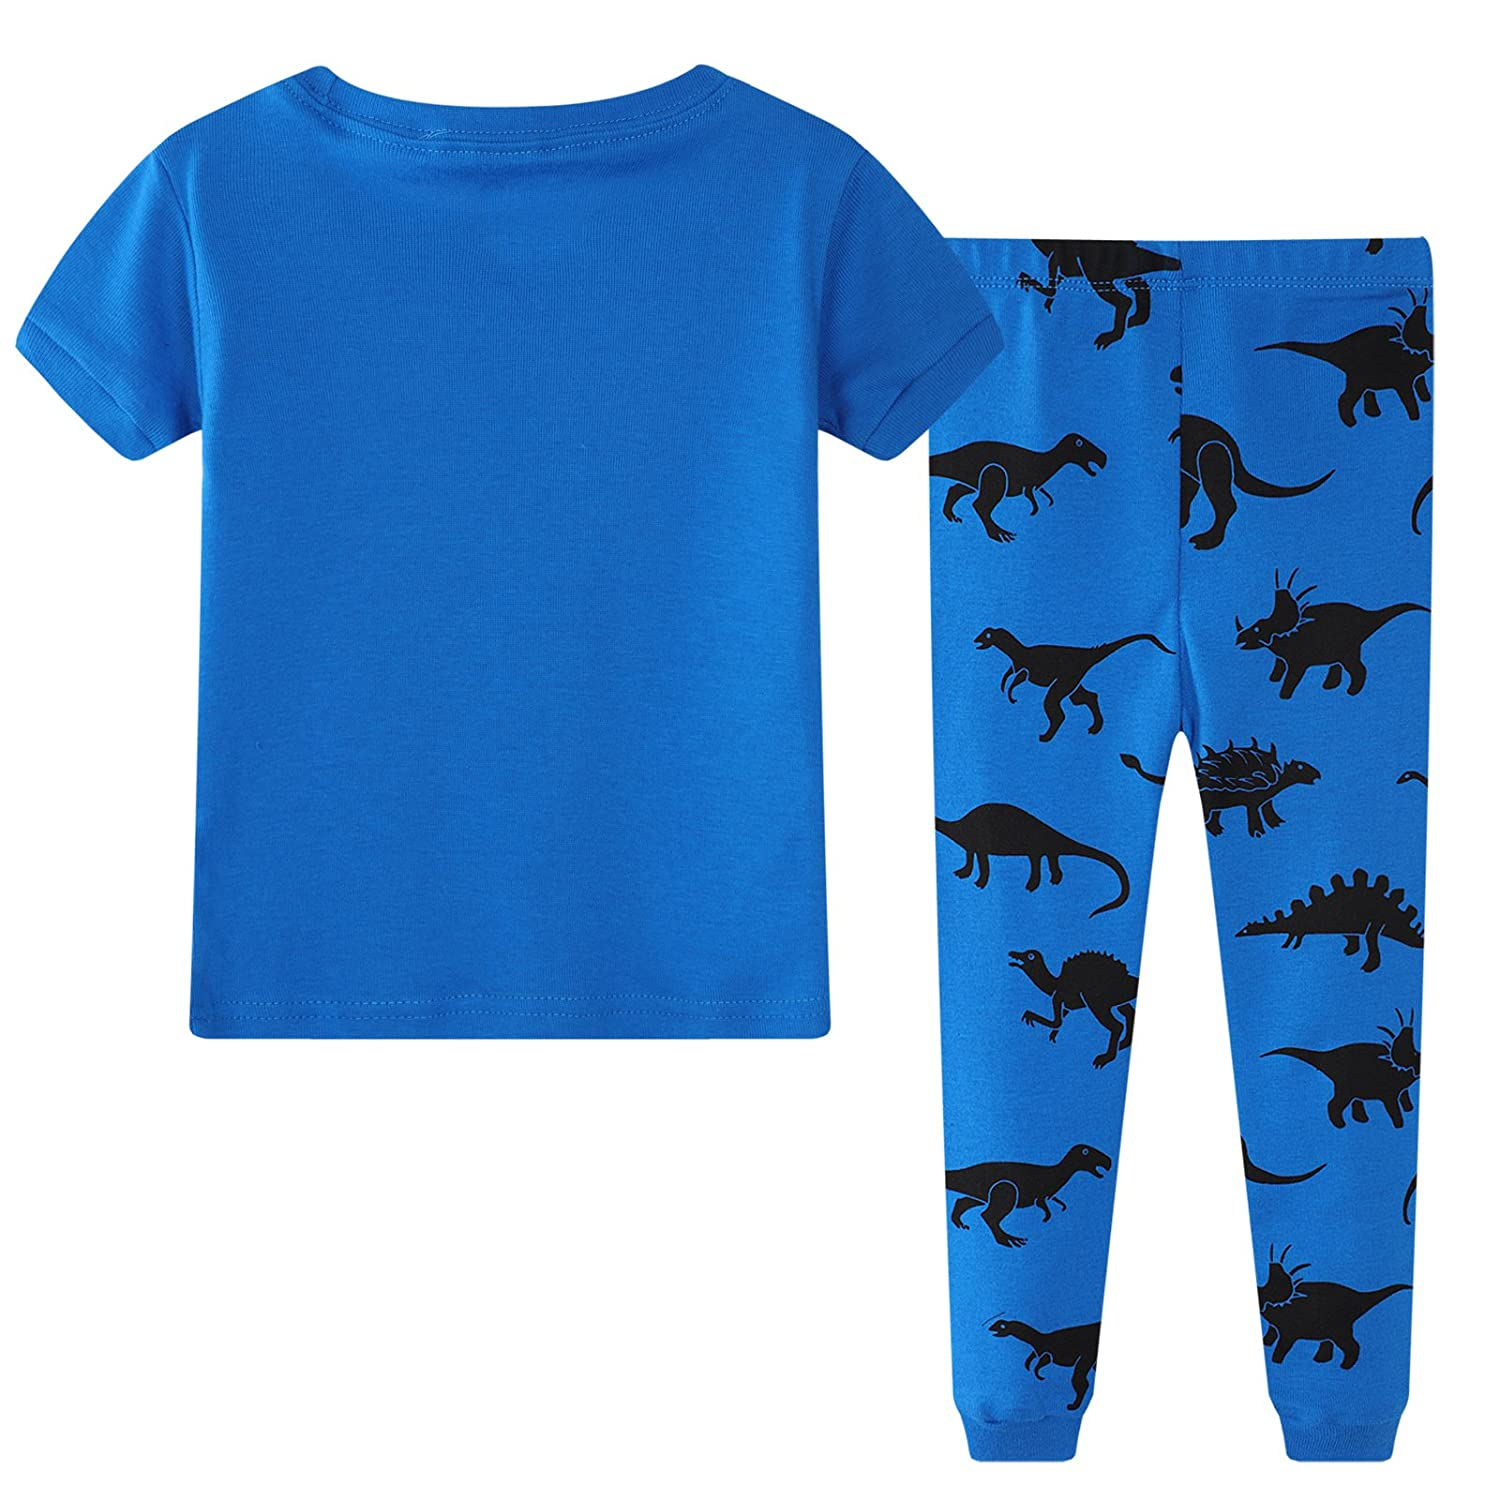 Little Boys Dinosaur Pajama Sets 100/% Cotton Cartoon Print